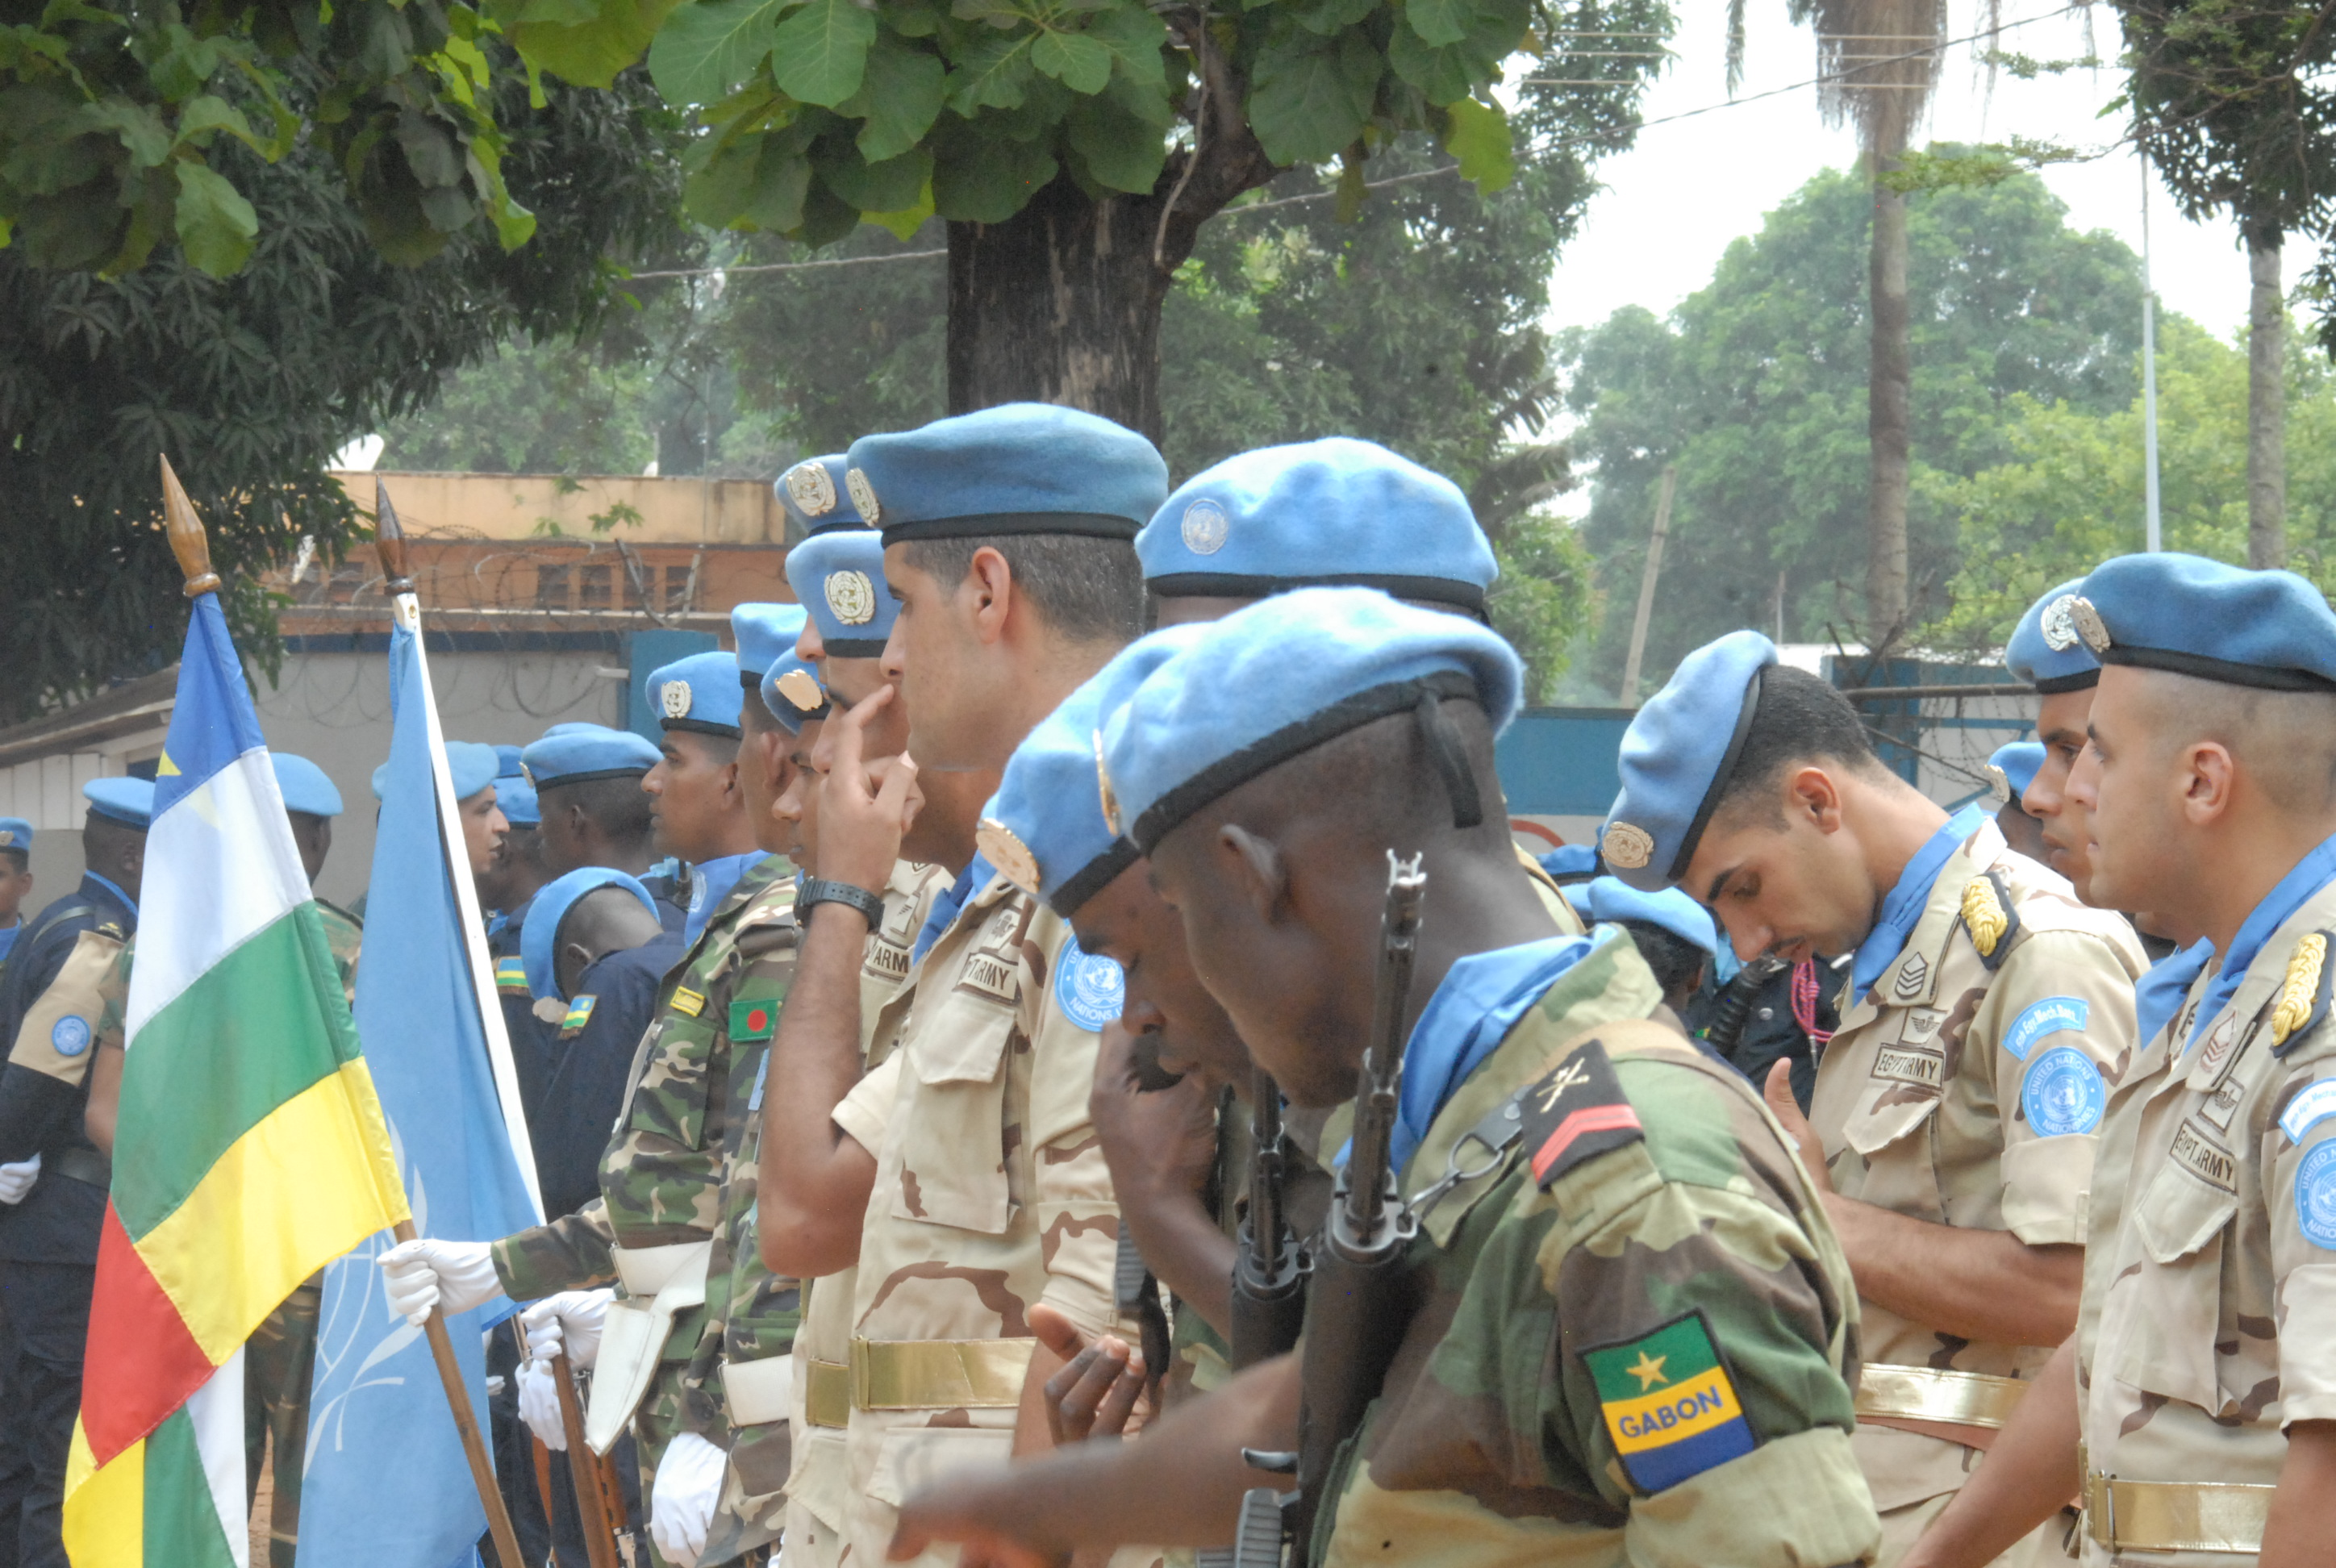 Central Africa Republic: U.N. fails to stem rapes by peacekeepers, victims cry